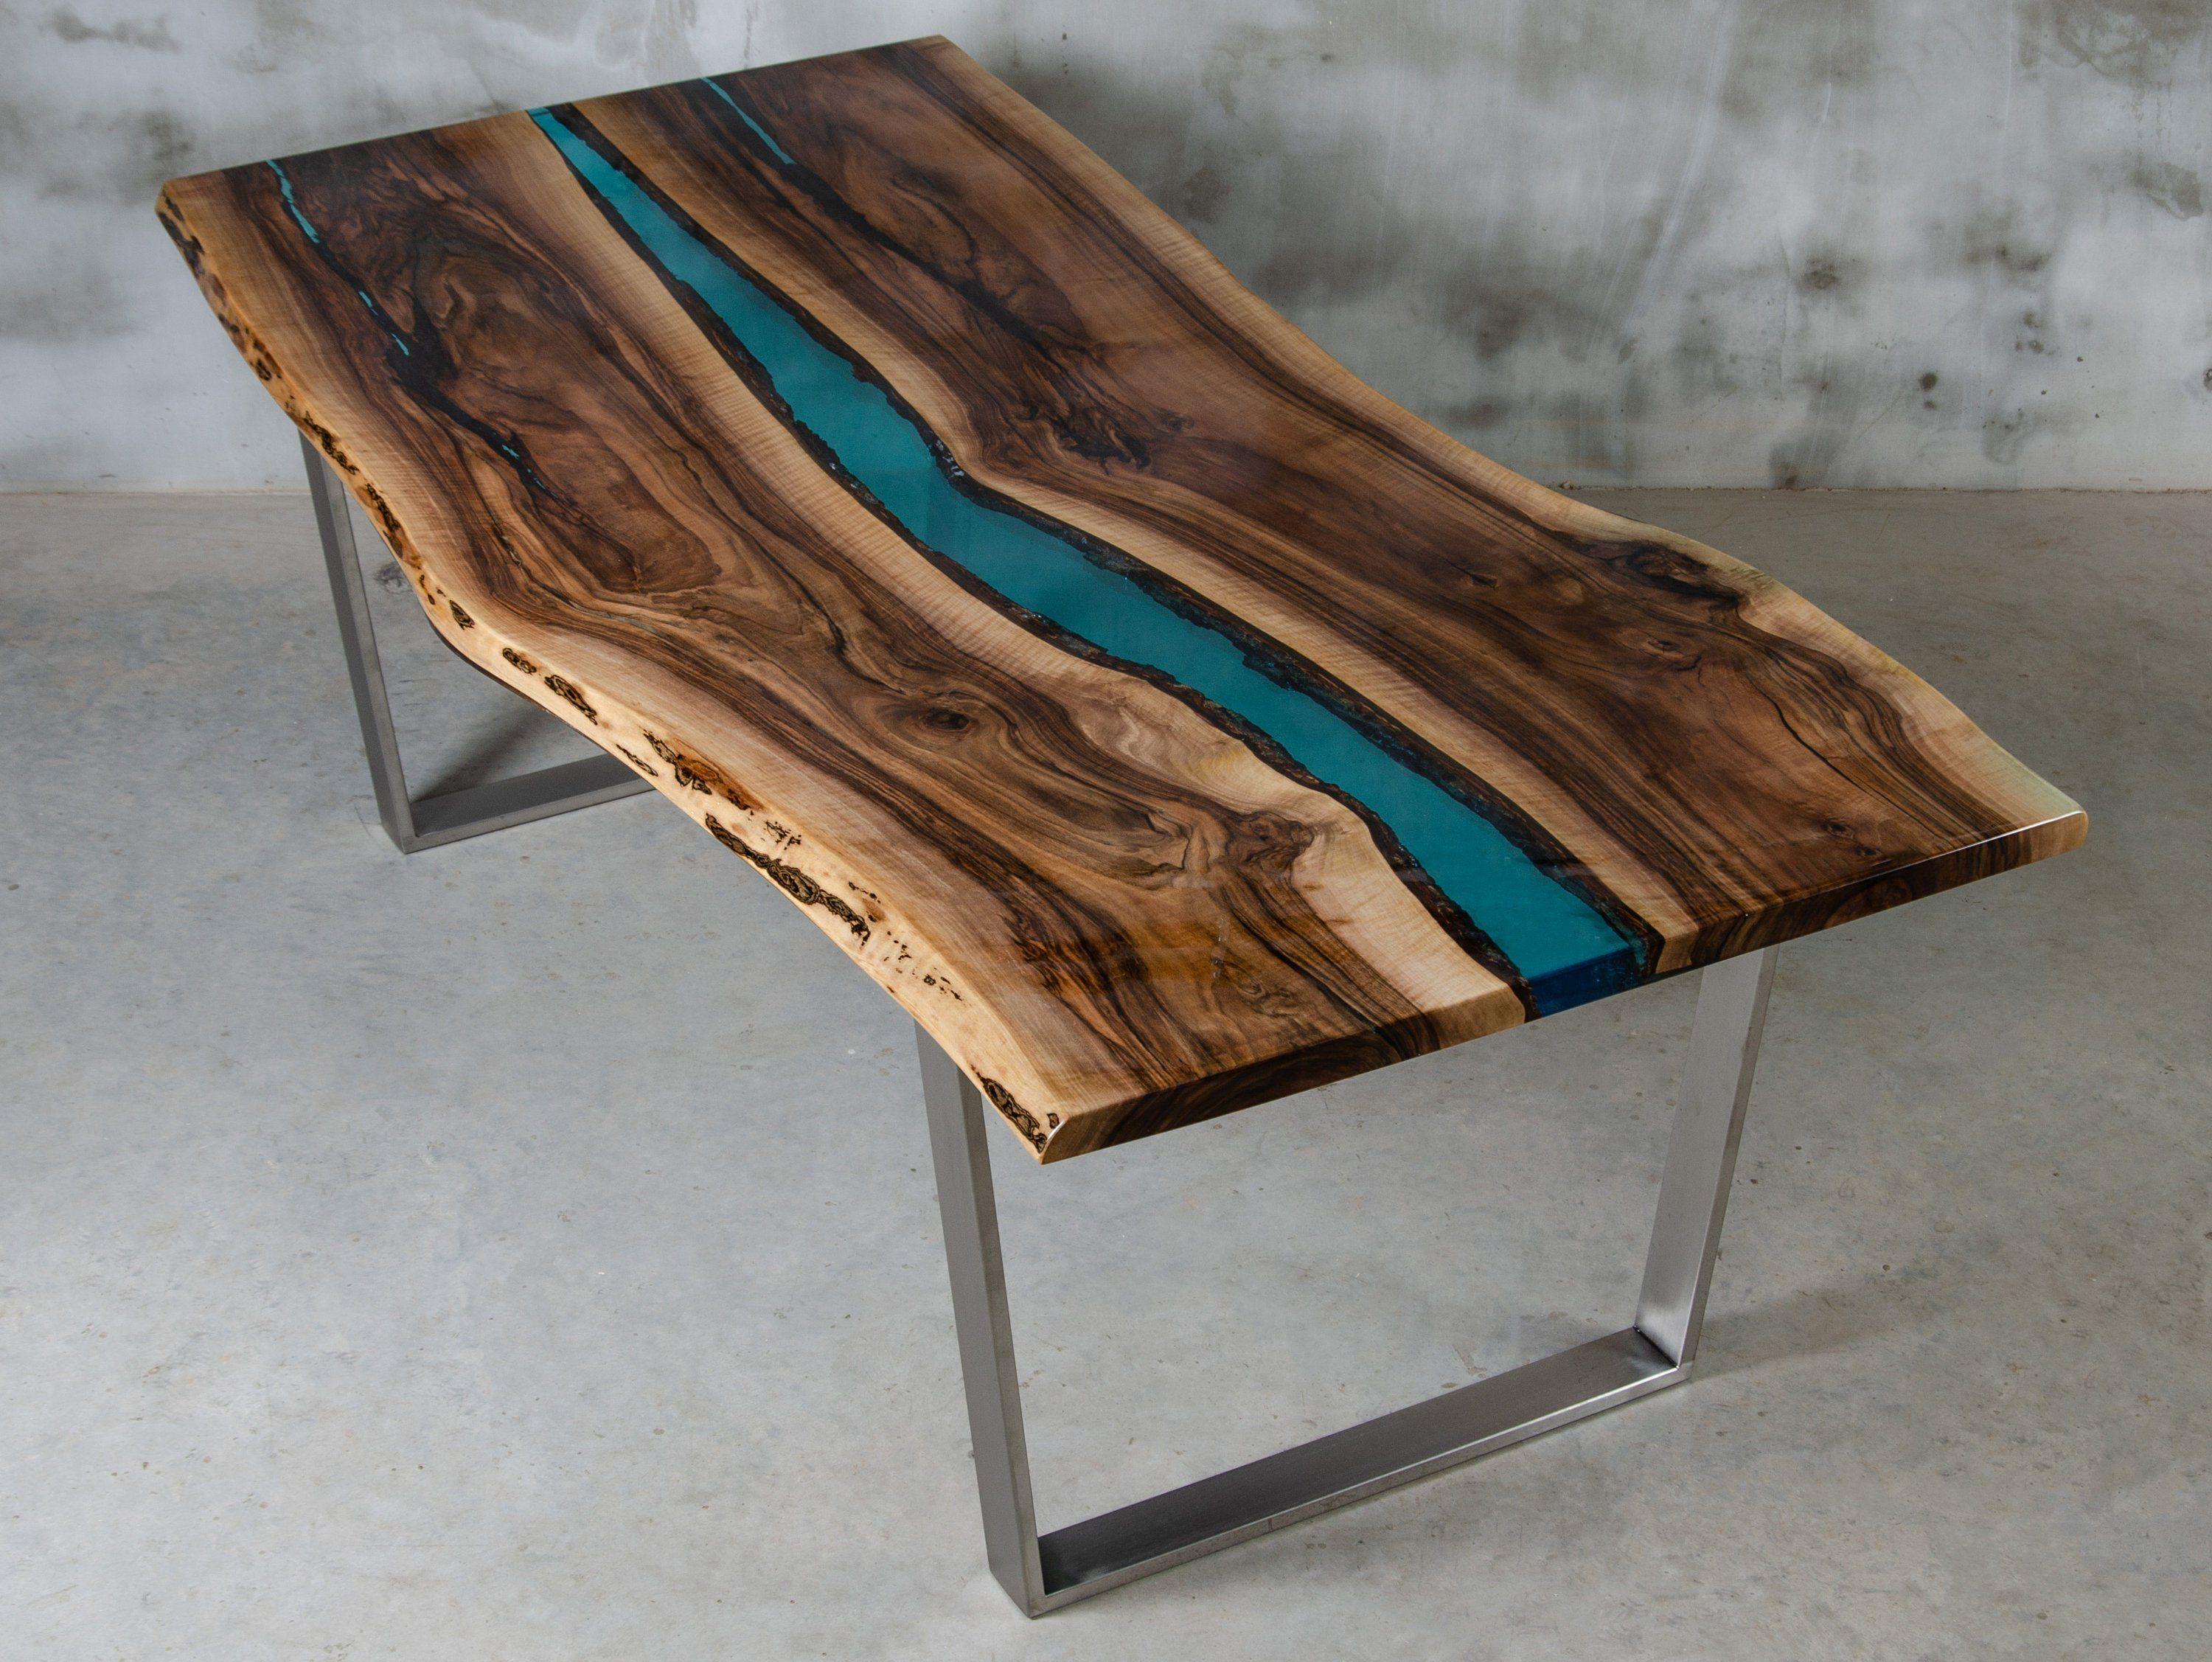 Custom Live Edge Table Made Of Walnut Wood And Blue Resin Uv Resin Table Dining Epoxy Table Unique Conference Table Industrial Style